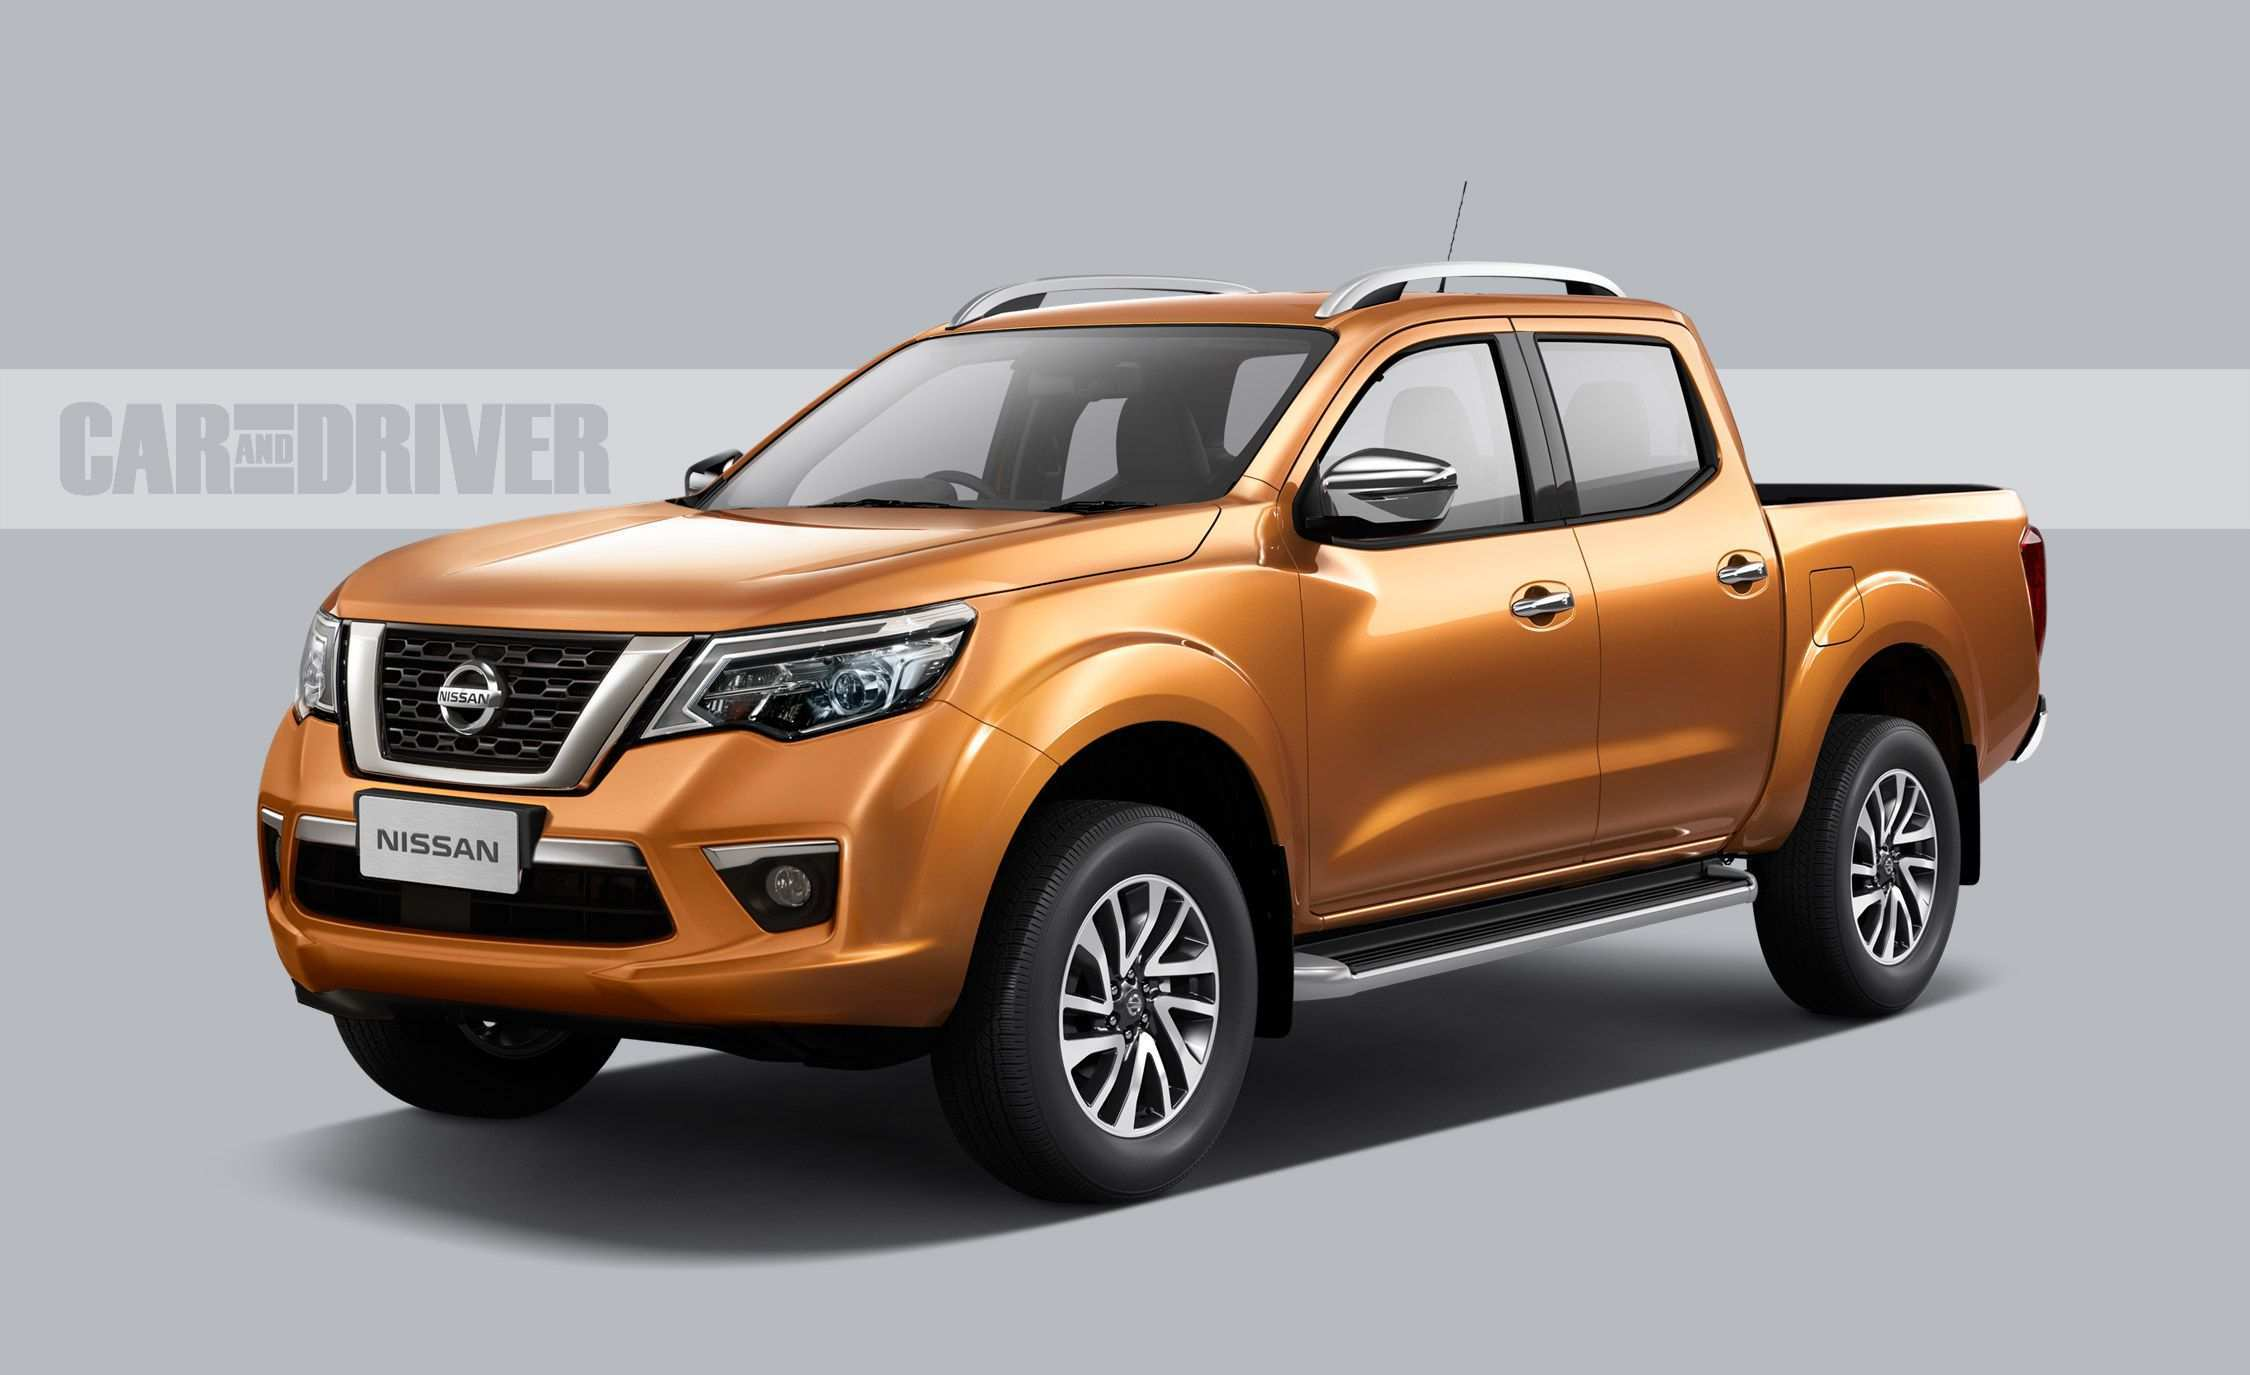 70 The Best Nissan Pickup 2020 Concept And Review